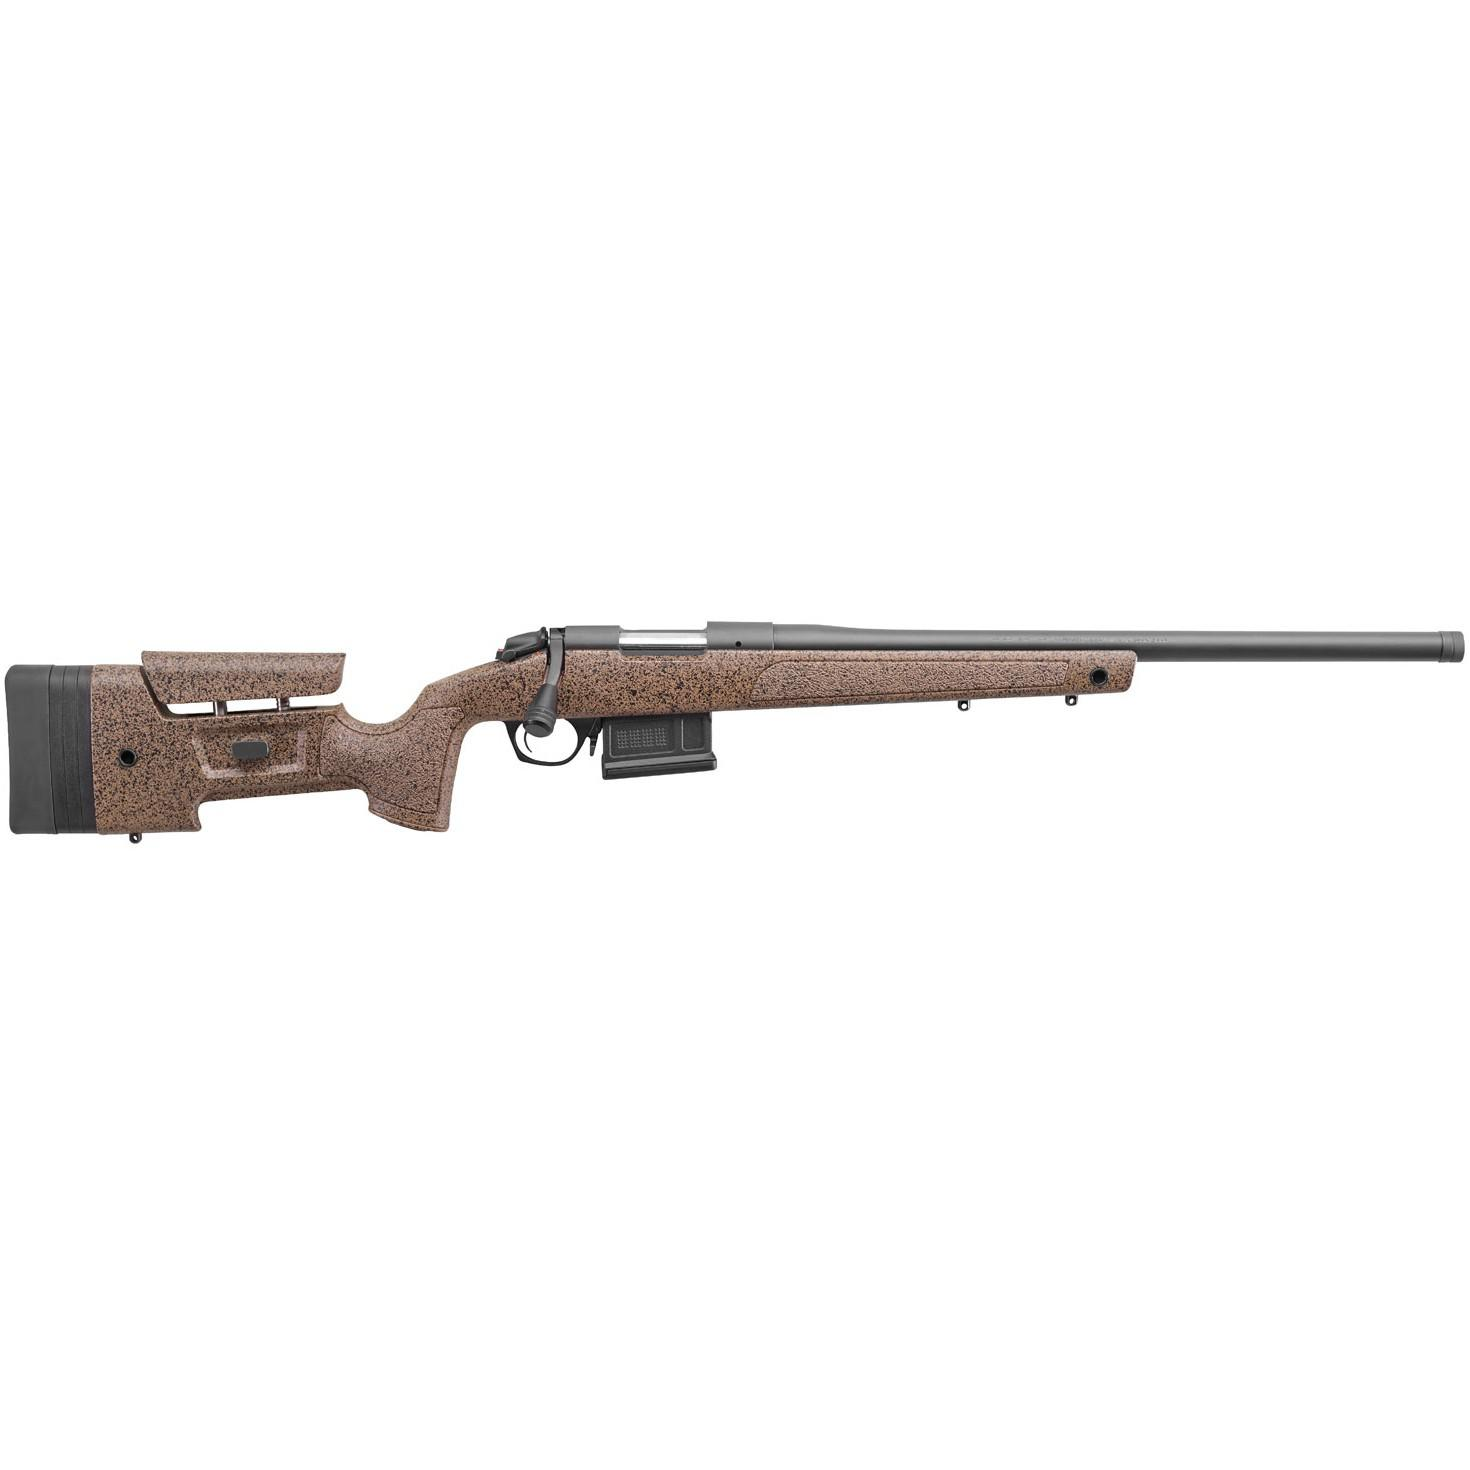 Bergara HMR Rifle 6.5 Creedmoor - for sale